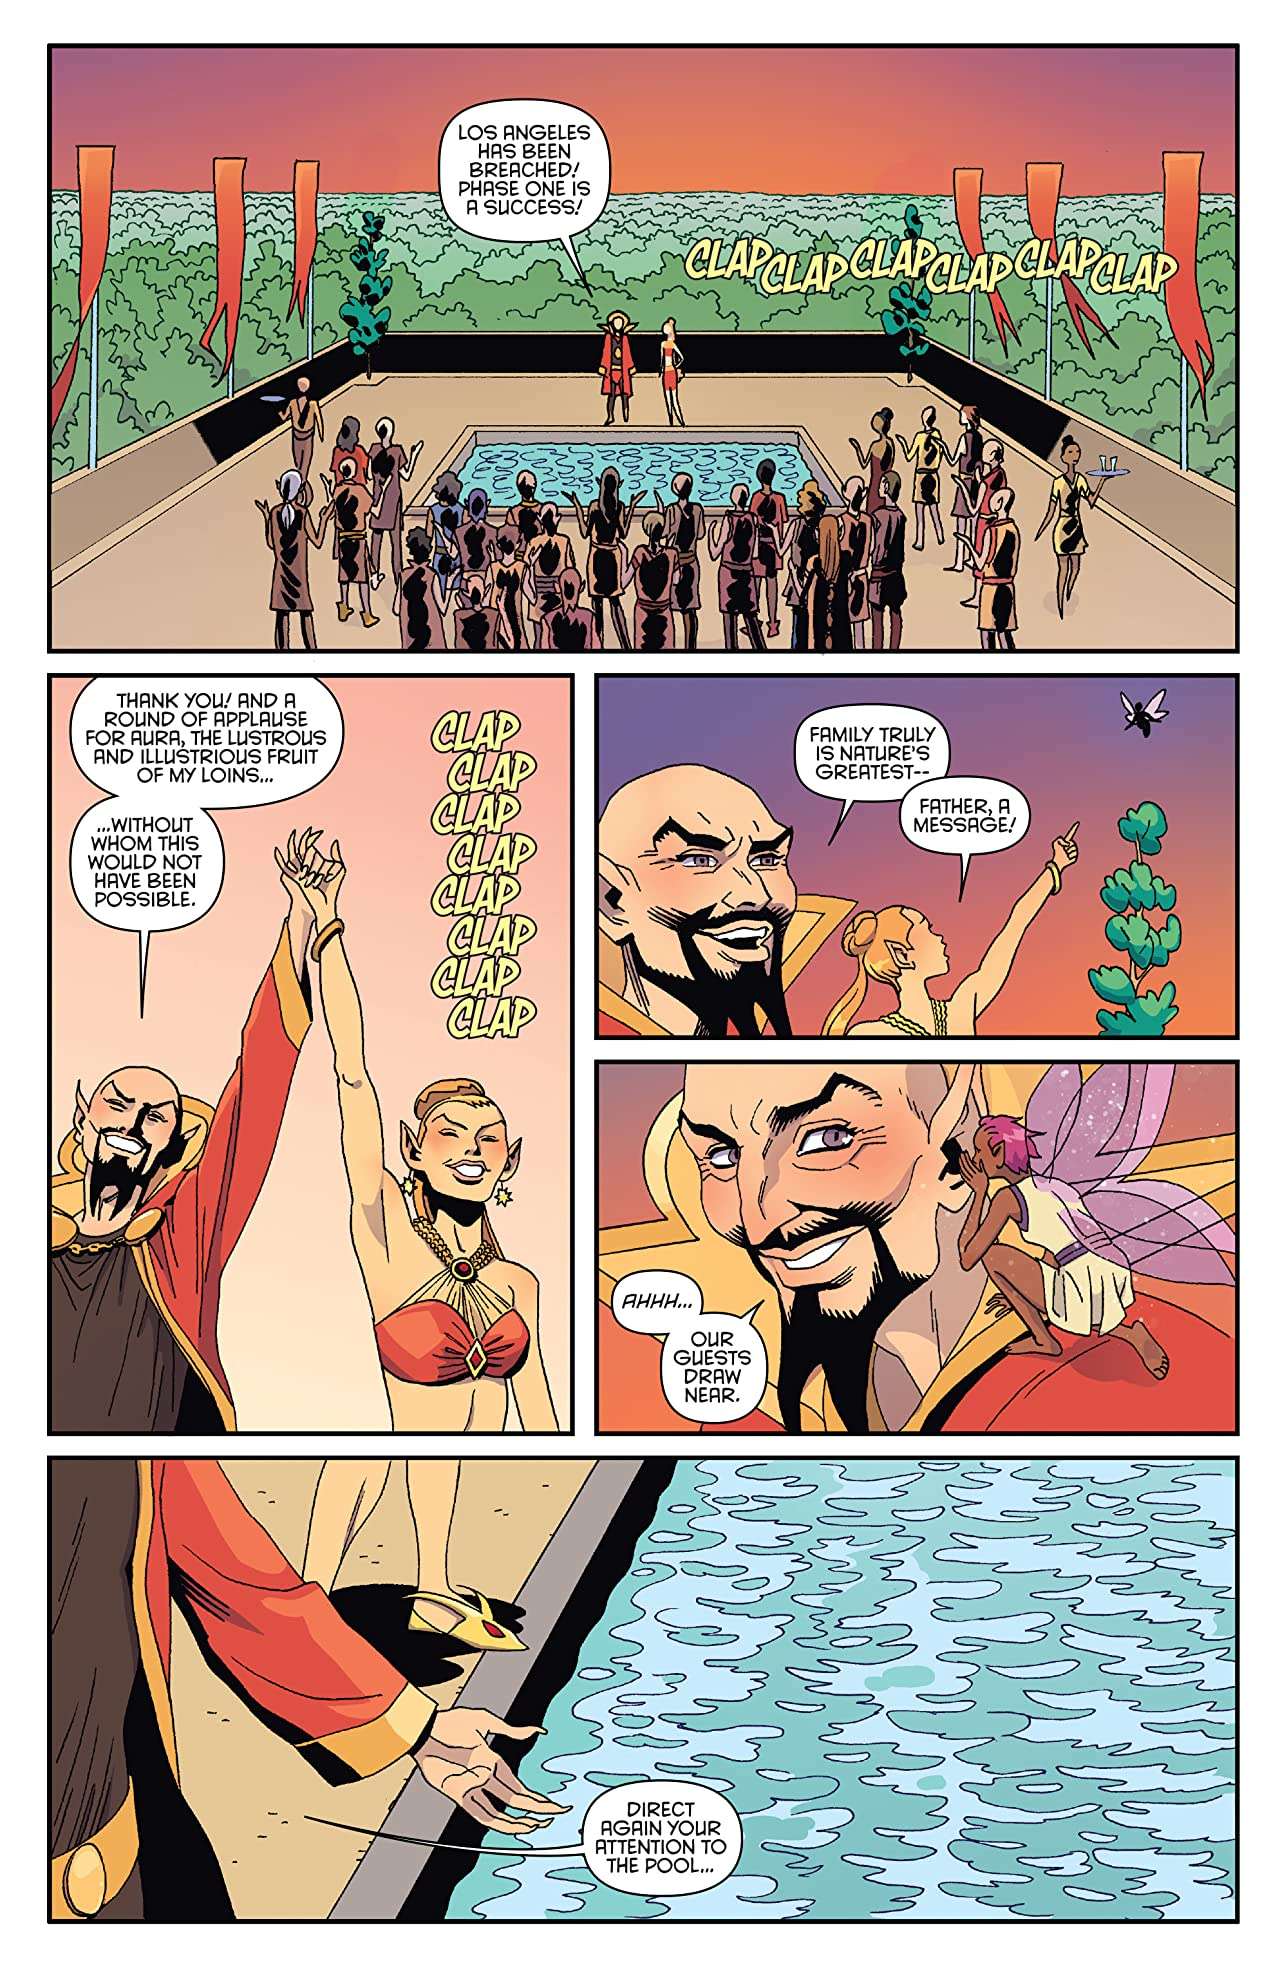 Flash Gordon: Kings Cross #4